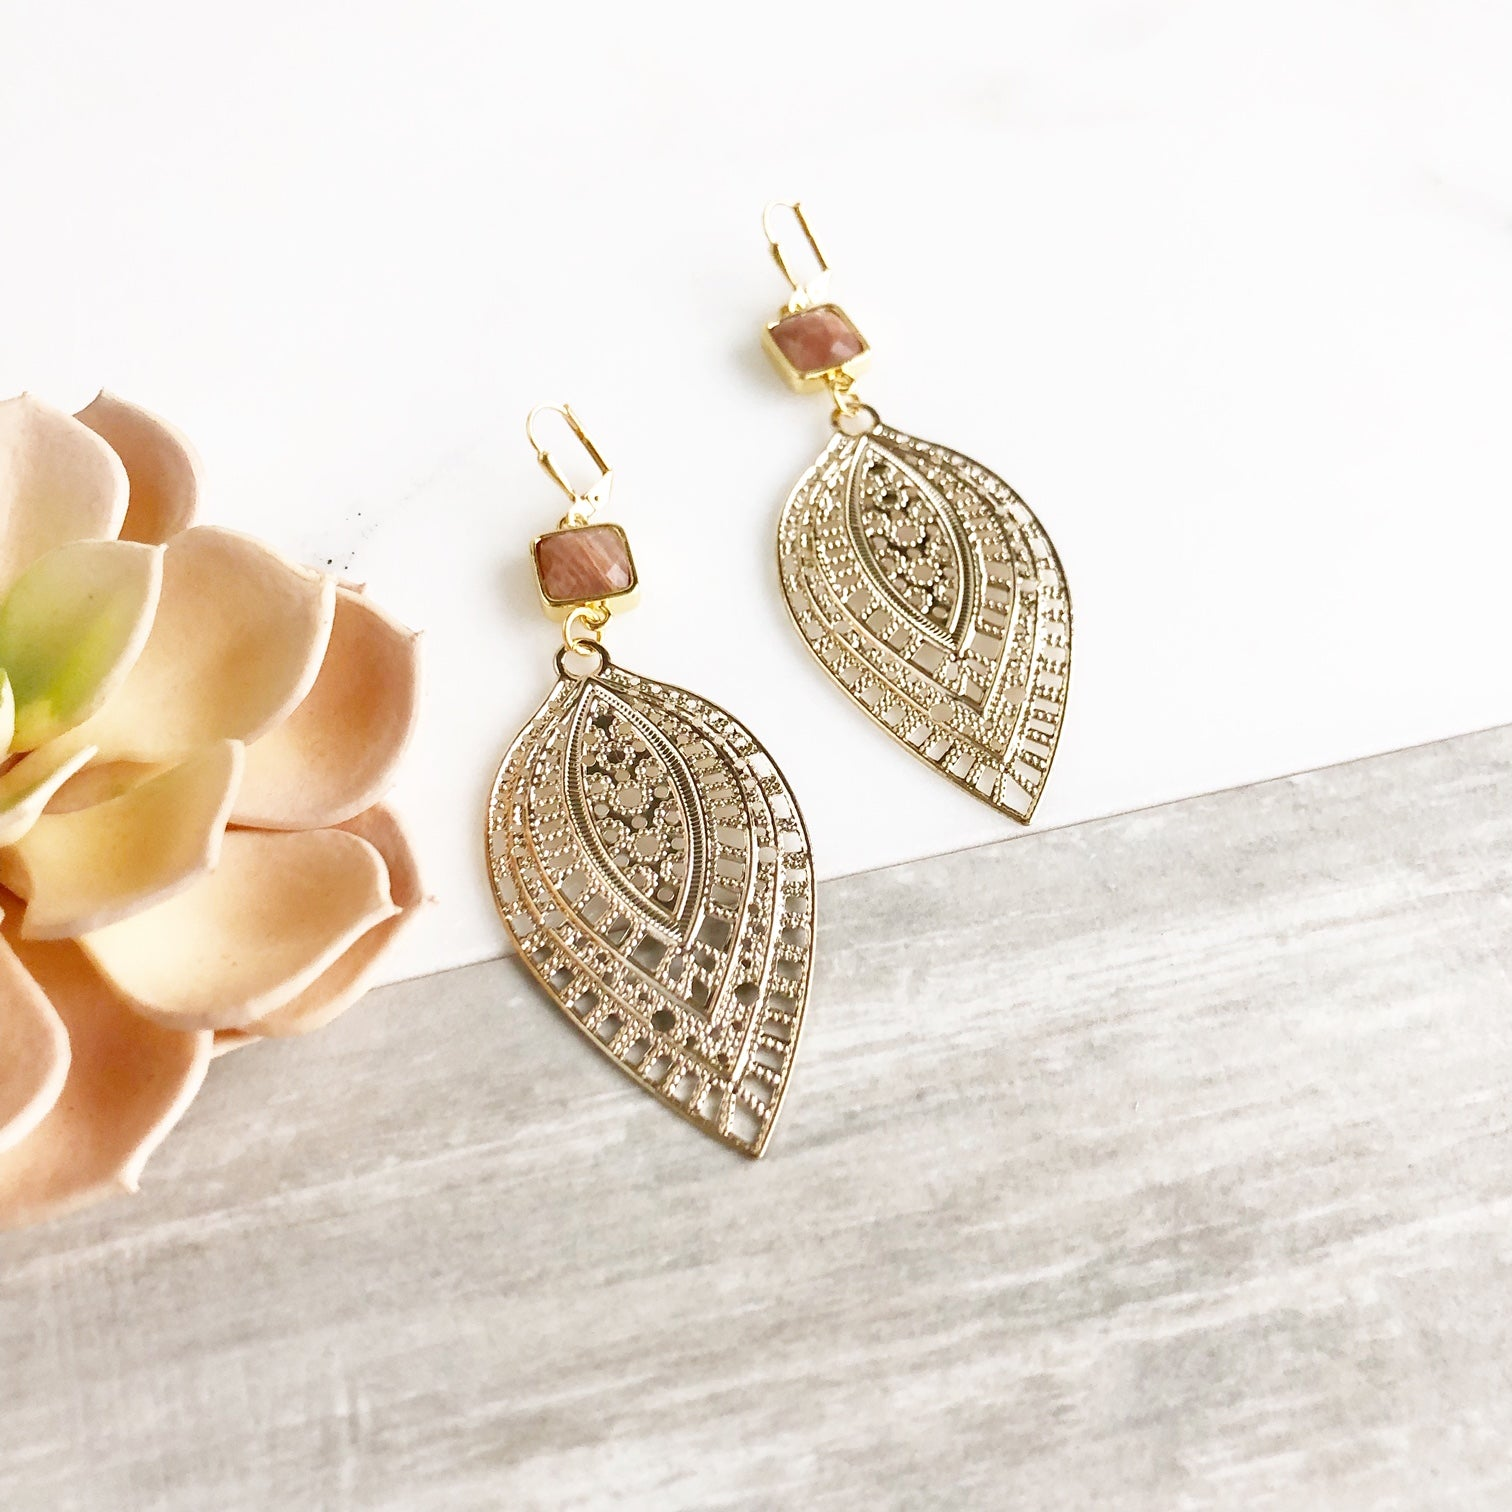 Large Leaf Earrings with Rust Red Orange Stones in Gold.